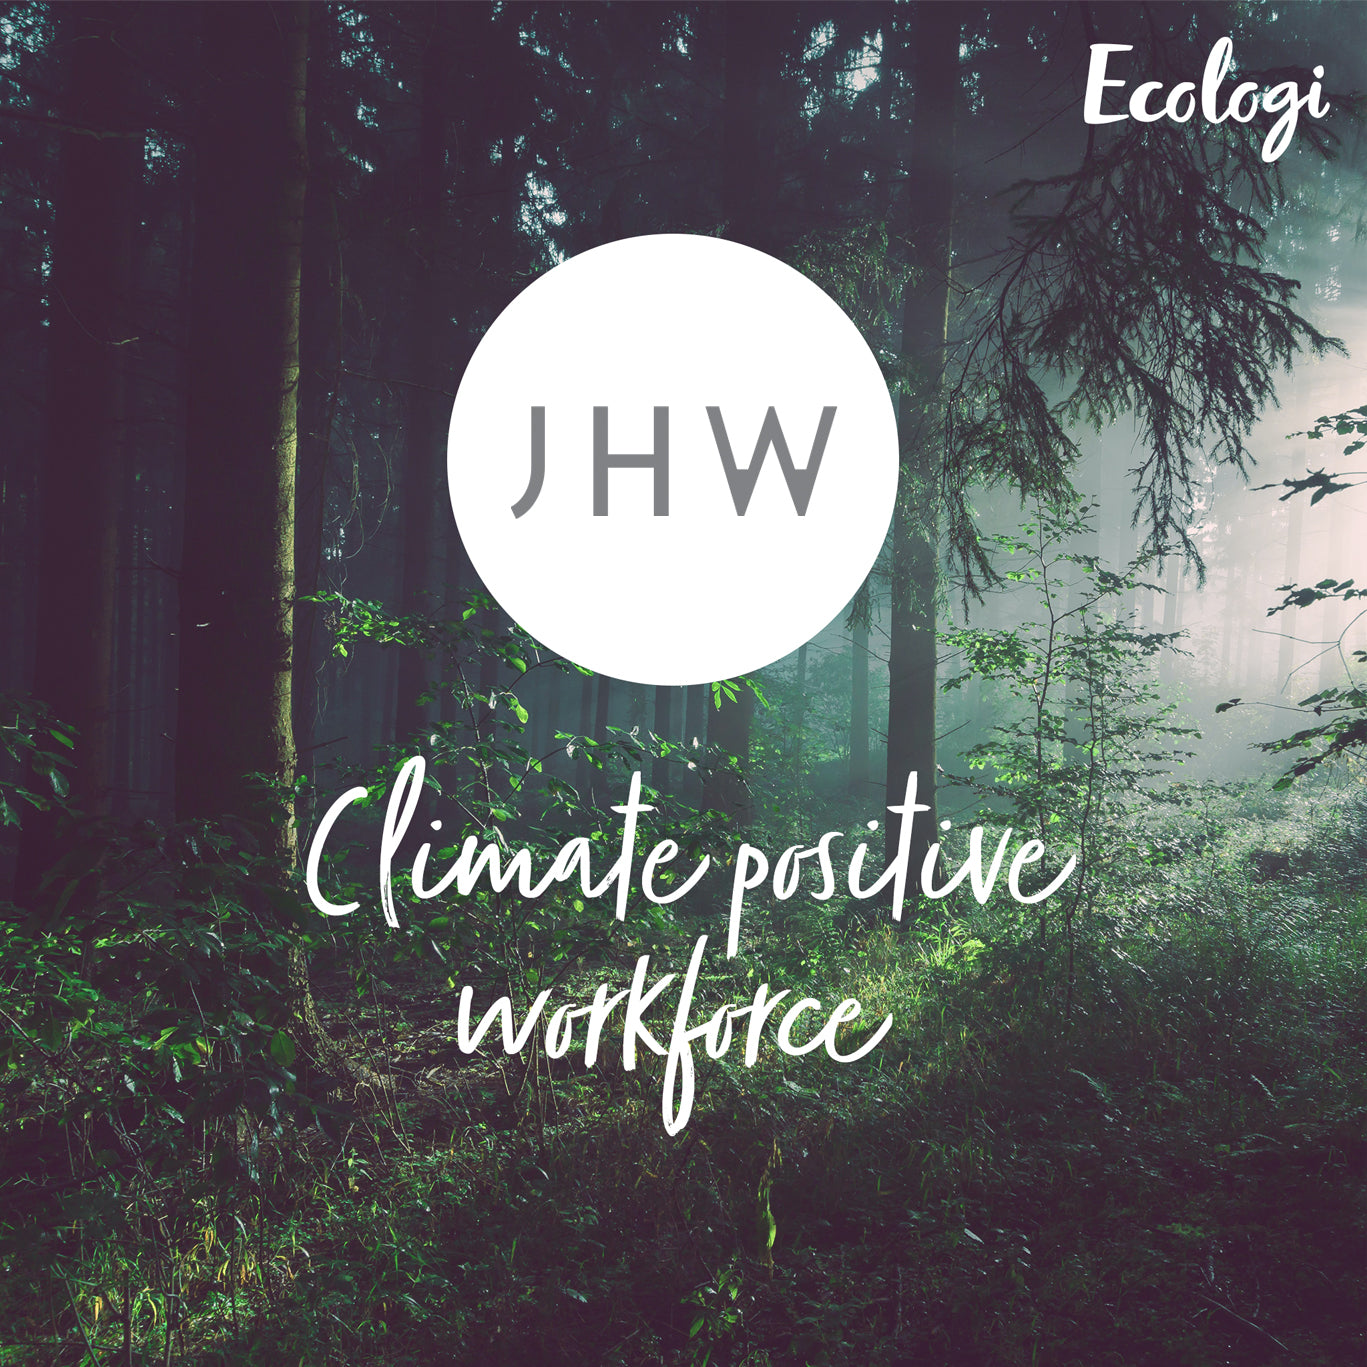 JHW and Ecologi - Climate positive workforce